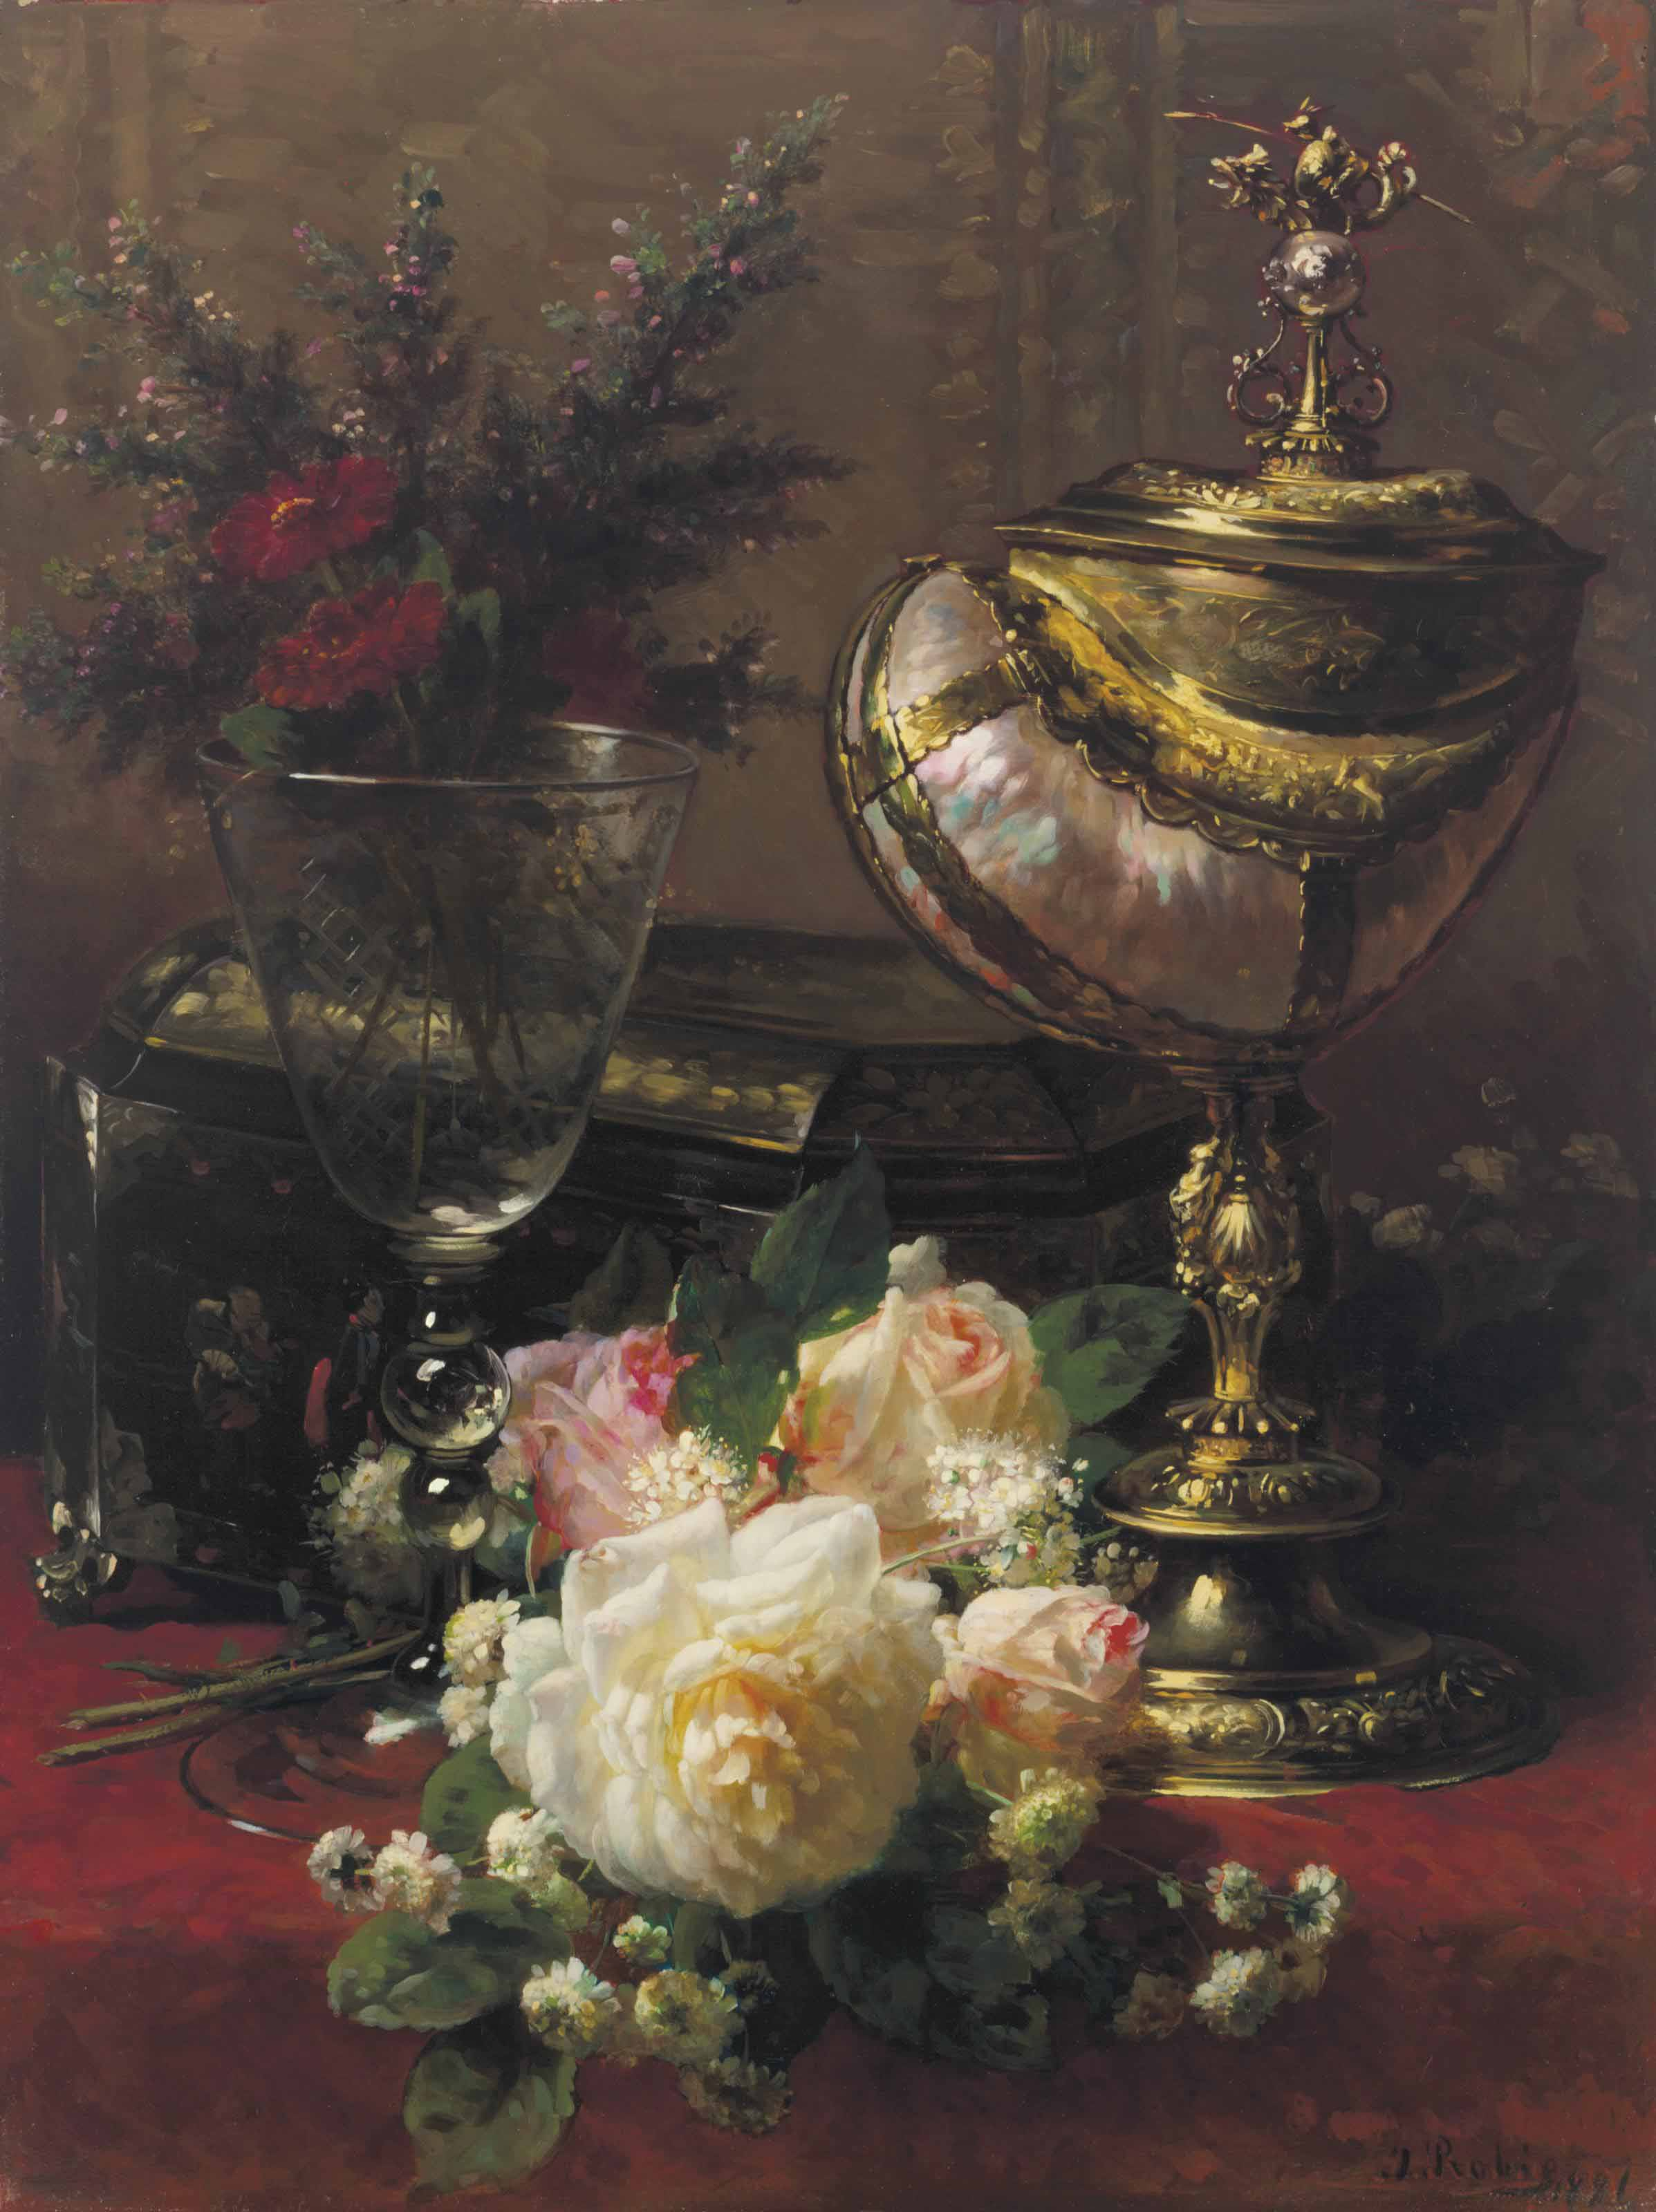 A Bouquet of Roses and other Flowers in a Glass Goblet with a Chinese Lacquer Box and a Nautilus Cup on a Red Velvet draped Table